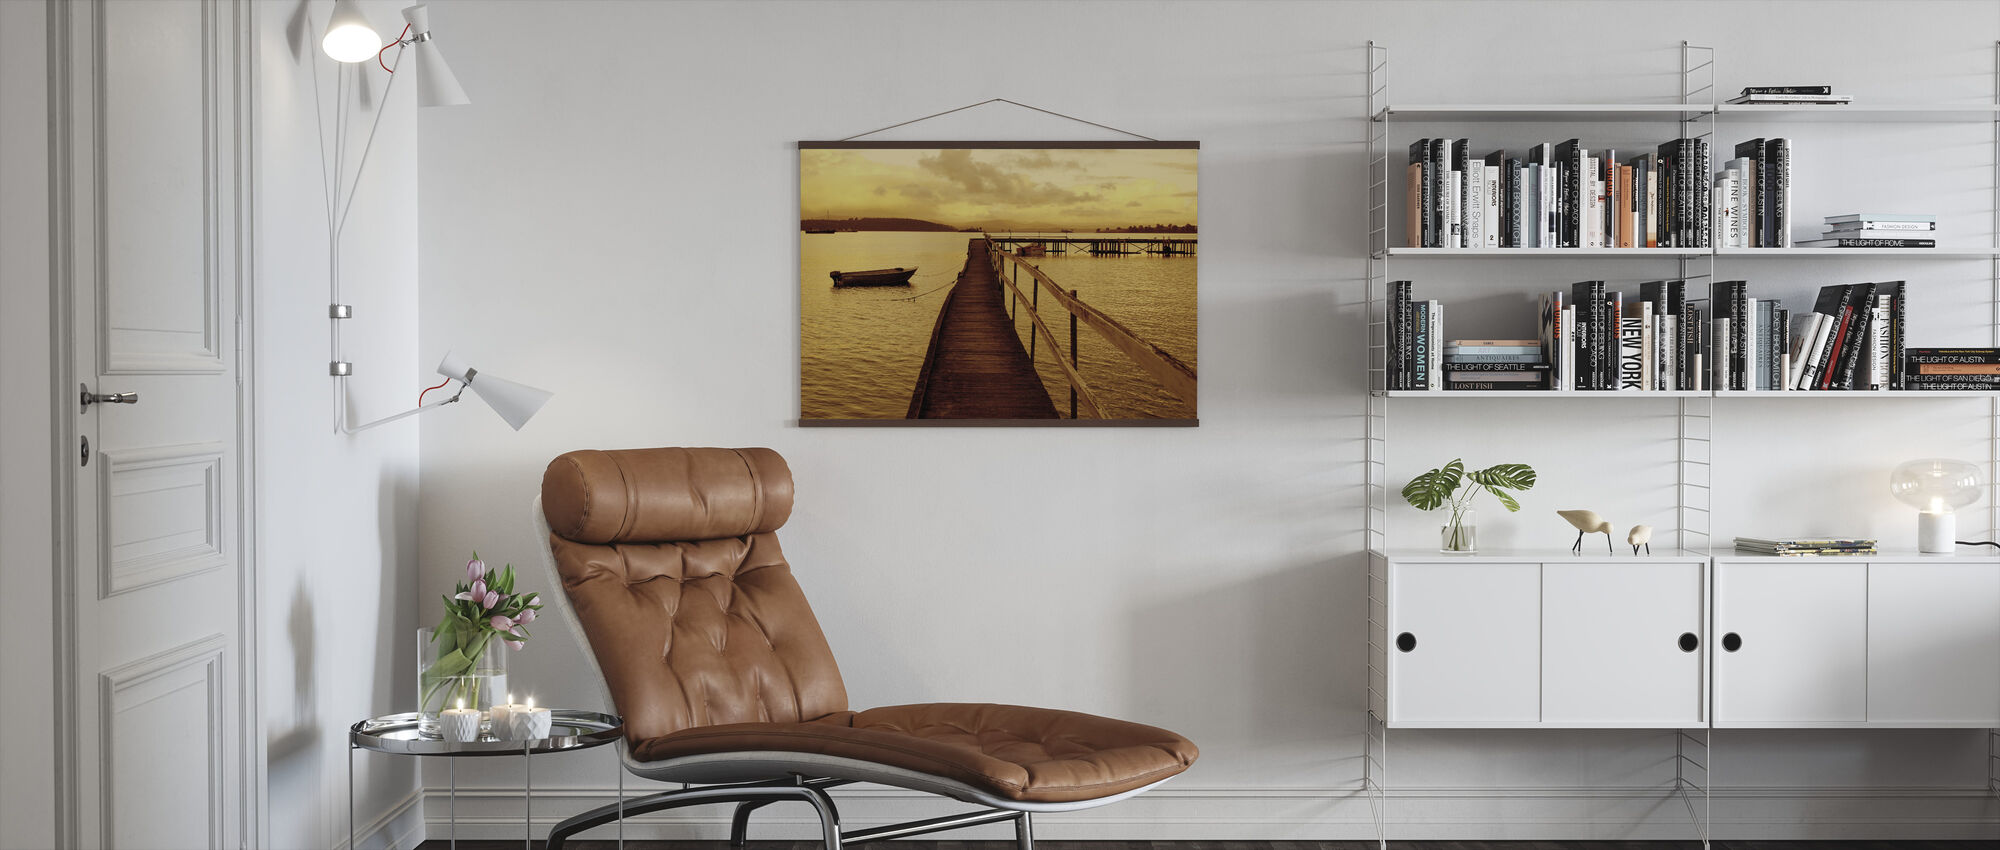 Art Of Waiting - Poster - Living Room